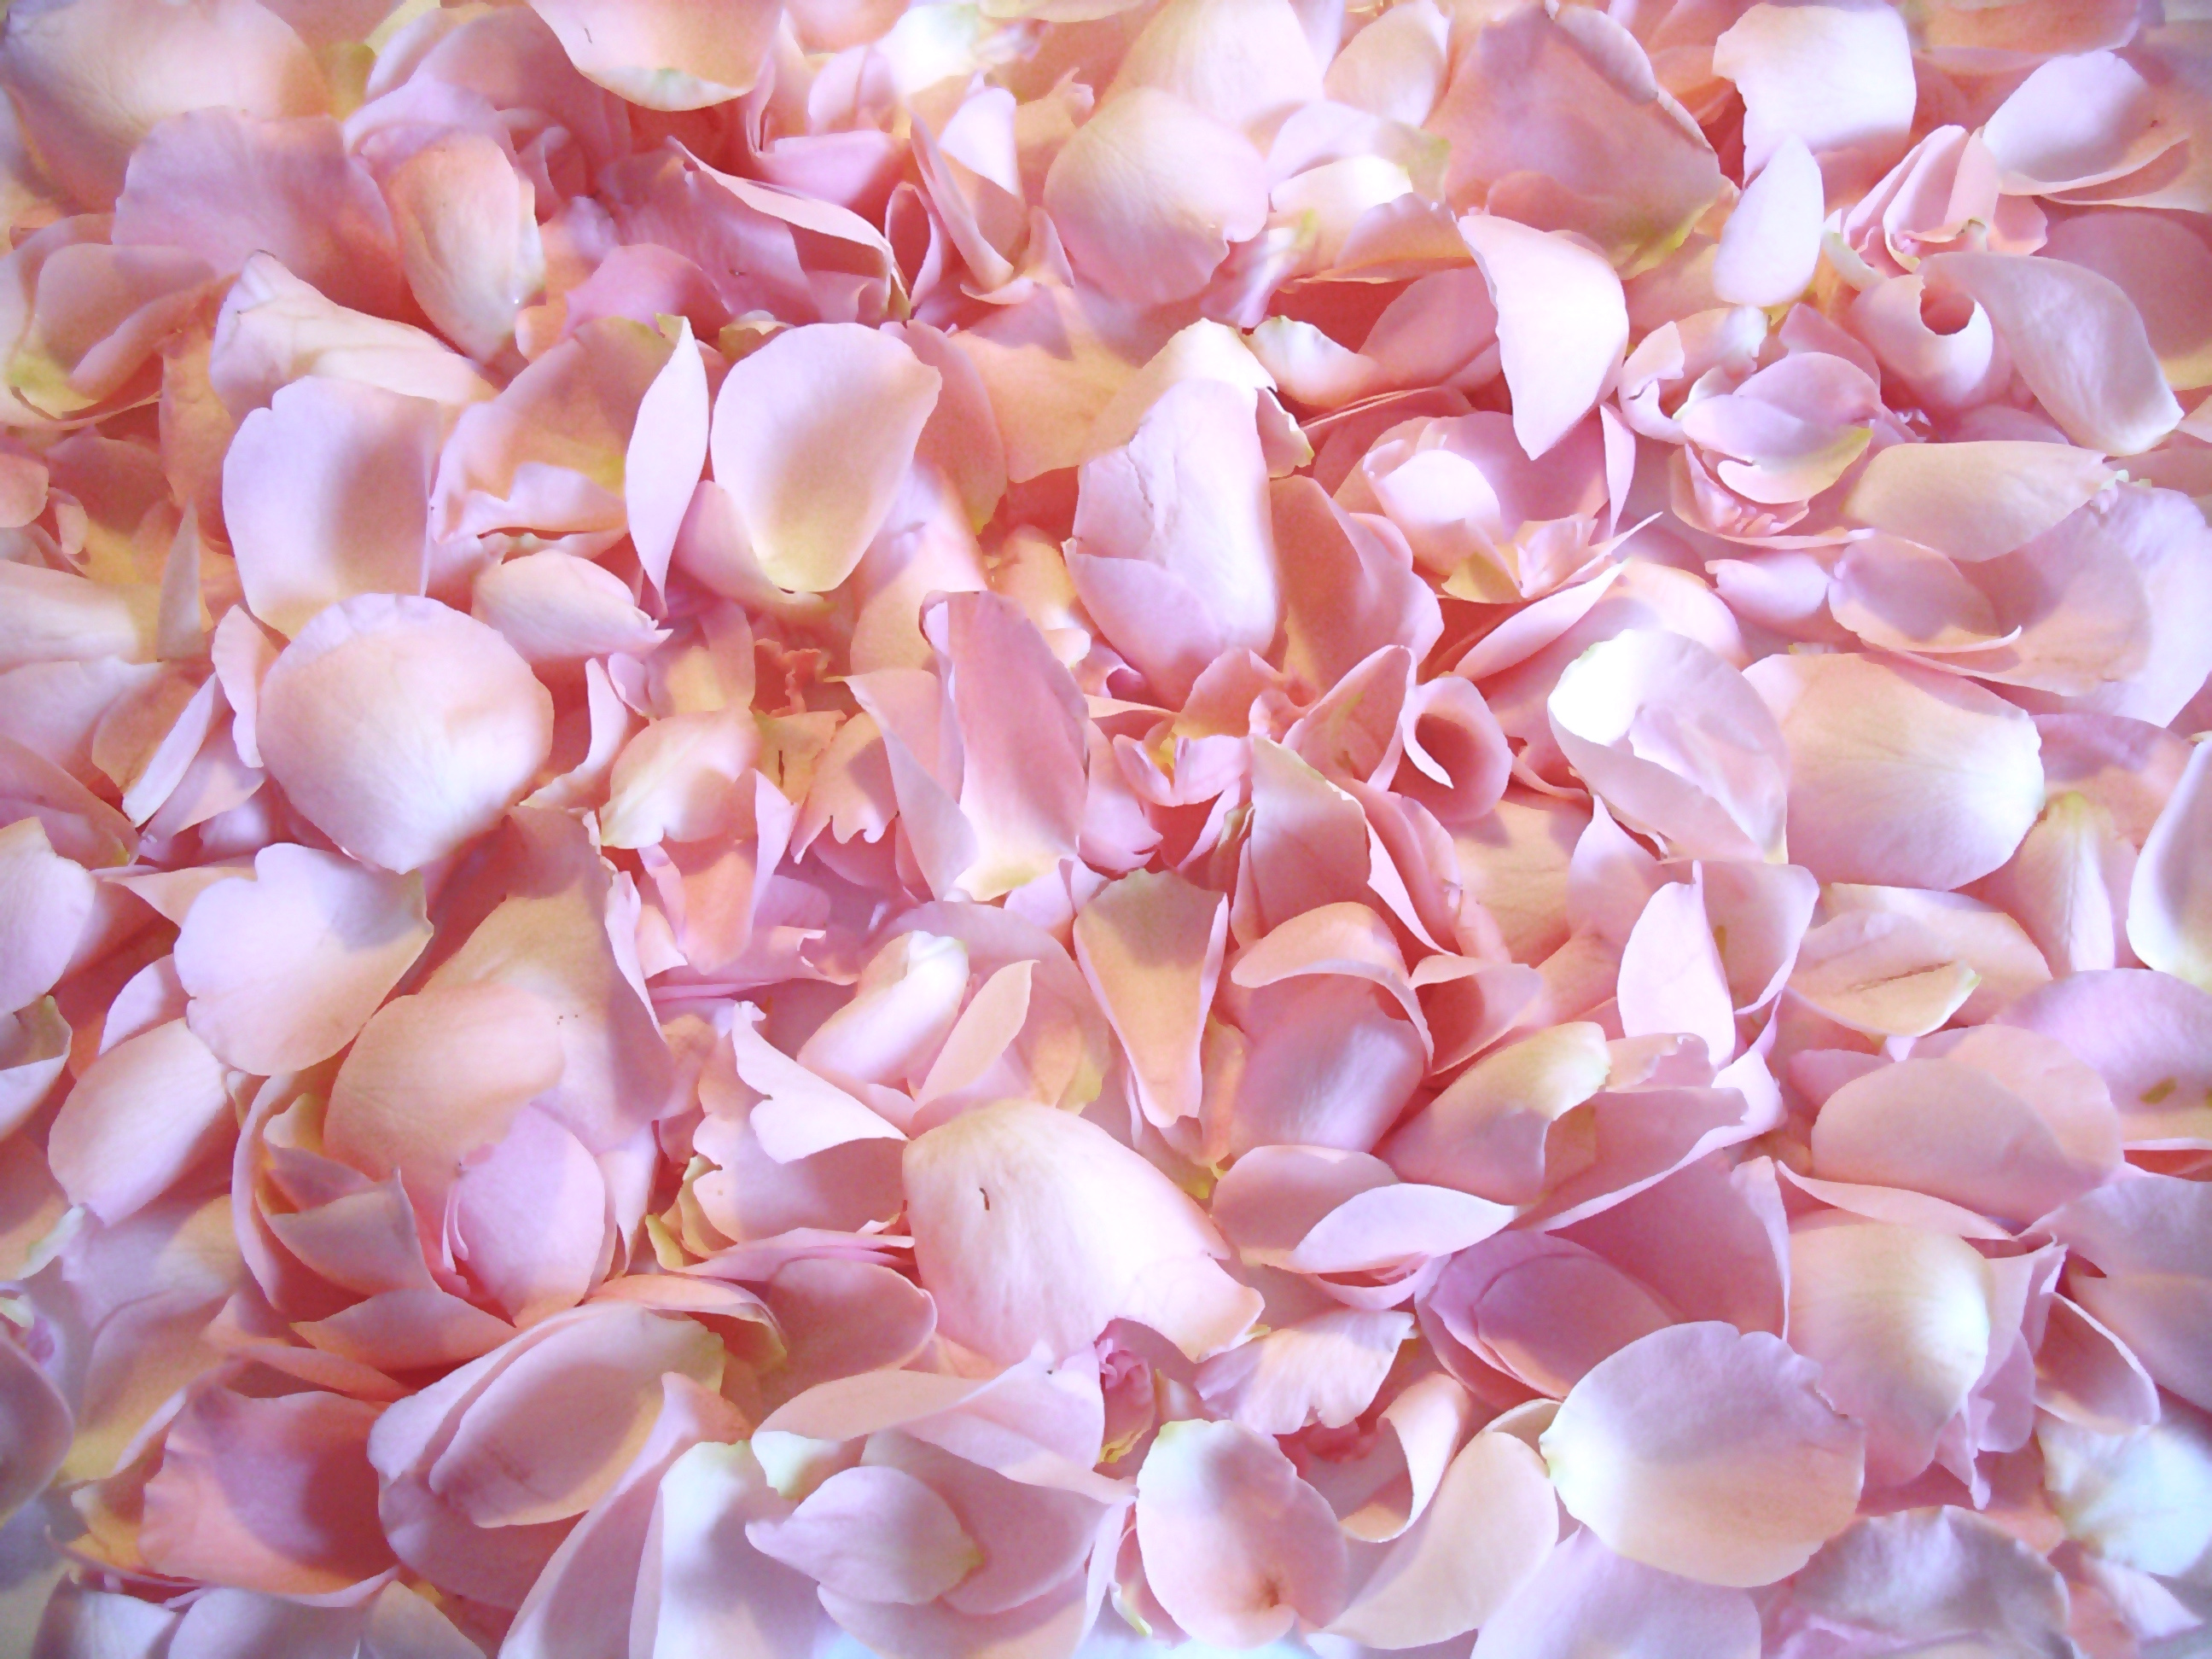 How to make your own flower confetti